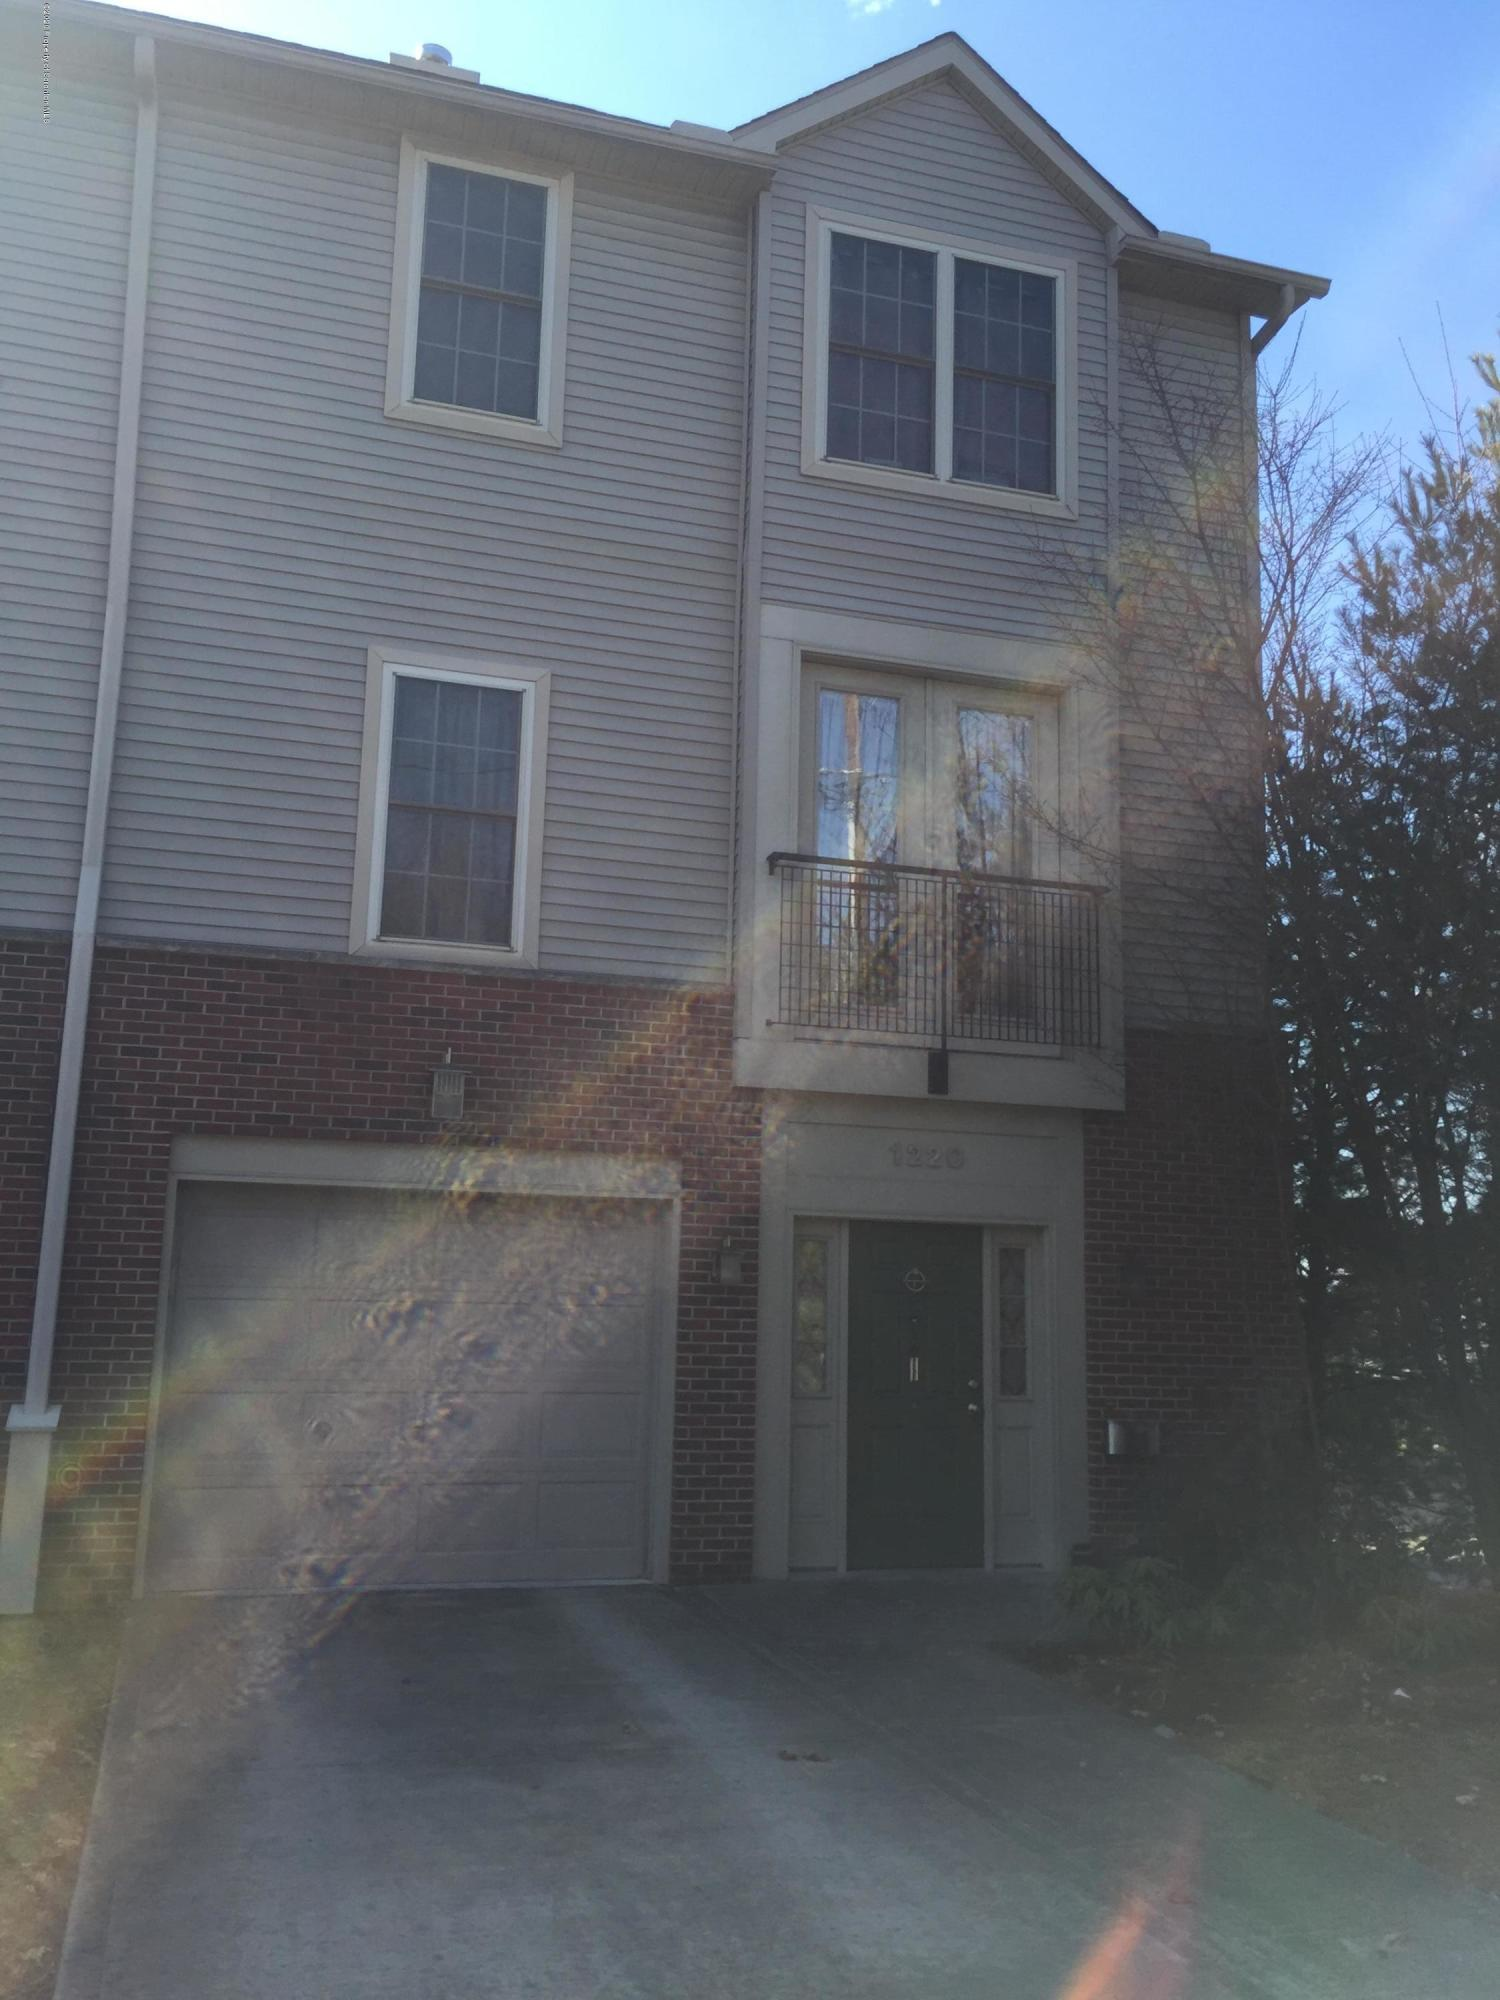 1220 Olive St, Scranton, Pennsylvania 18510, 3 Bedrooms Bedrooms, 6 Rooms Rooms,4 BathroomsBathrooms,Residential - condo/townhome,For Sale,Olive,20-1072